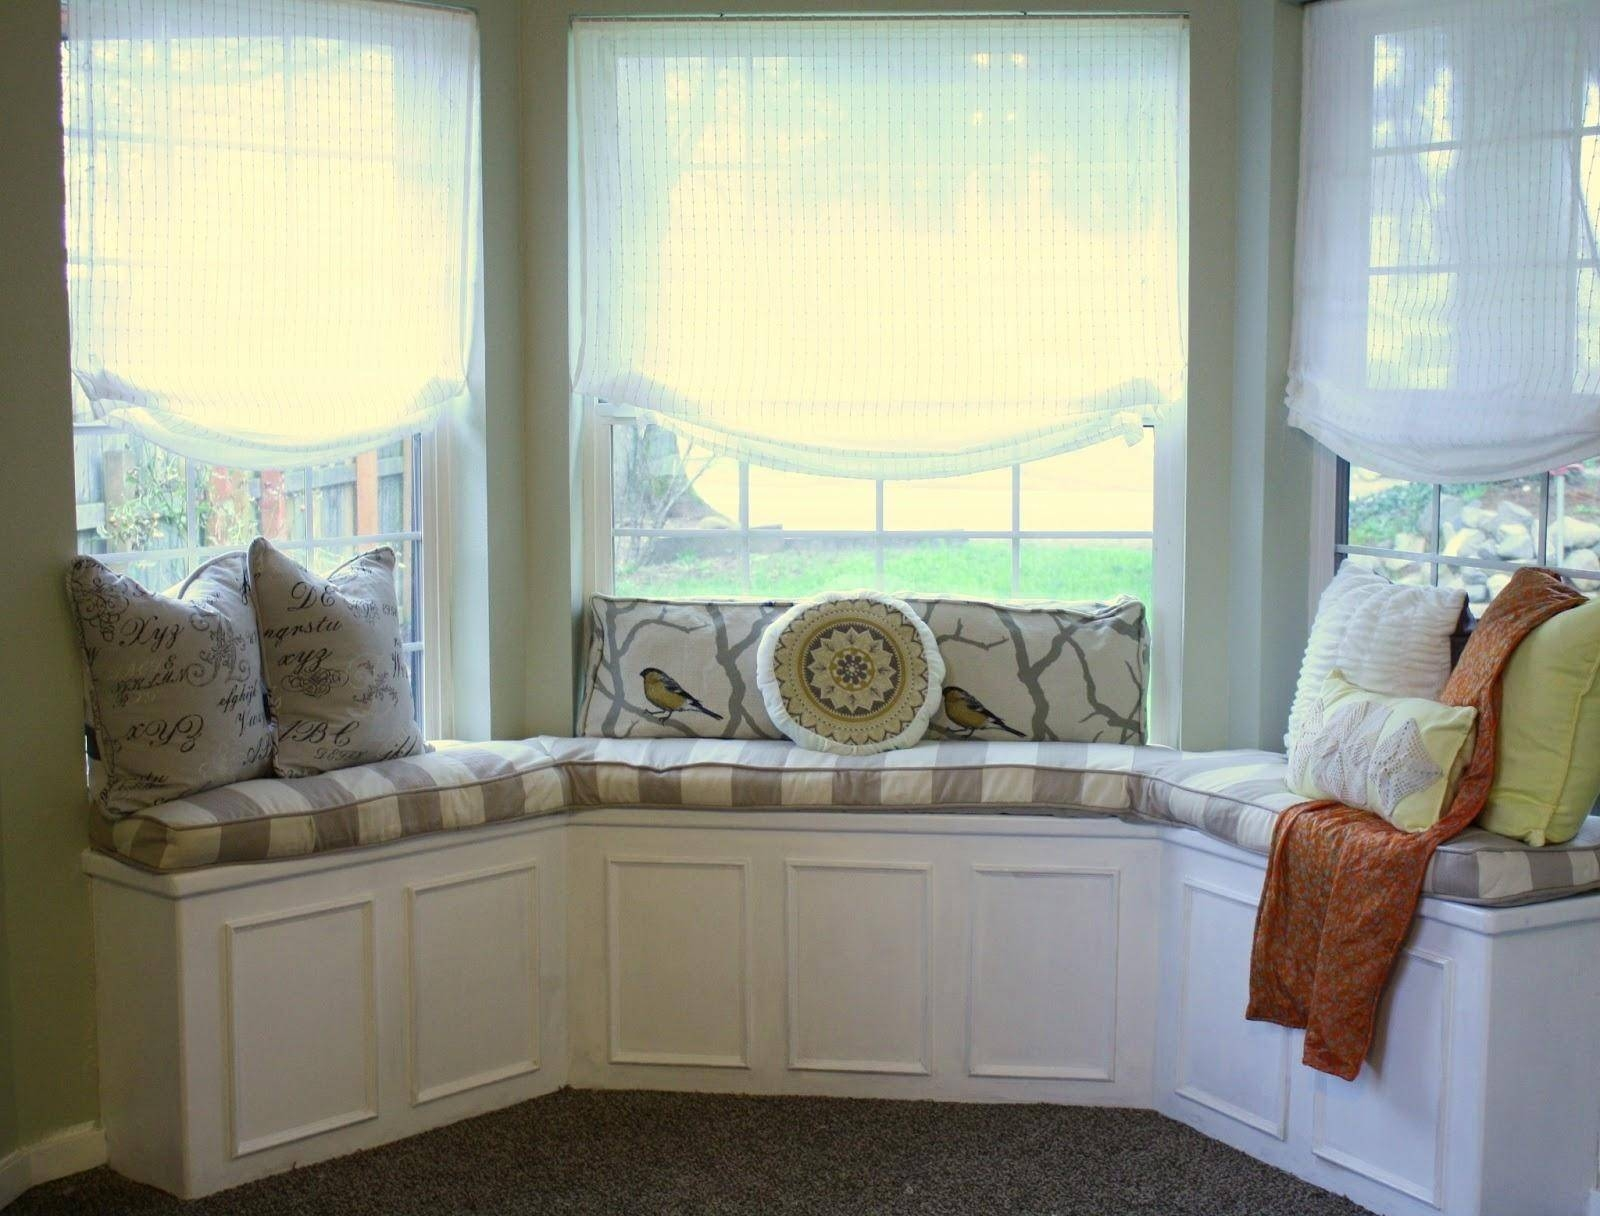 20+ Choices Of Sofas For Bay Window | Sofa Ideas within Sofas for Bay Window (Image 1 of 15)